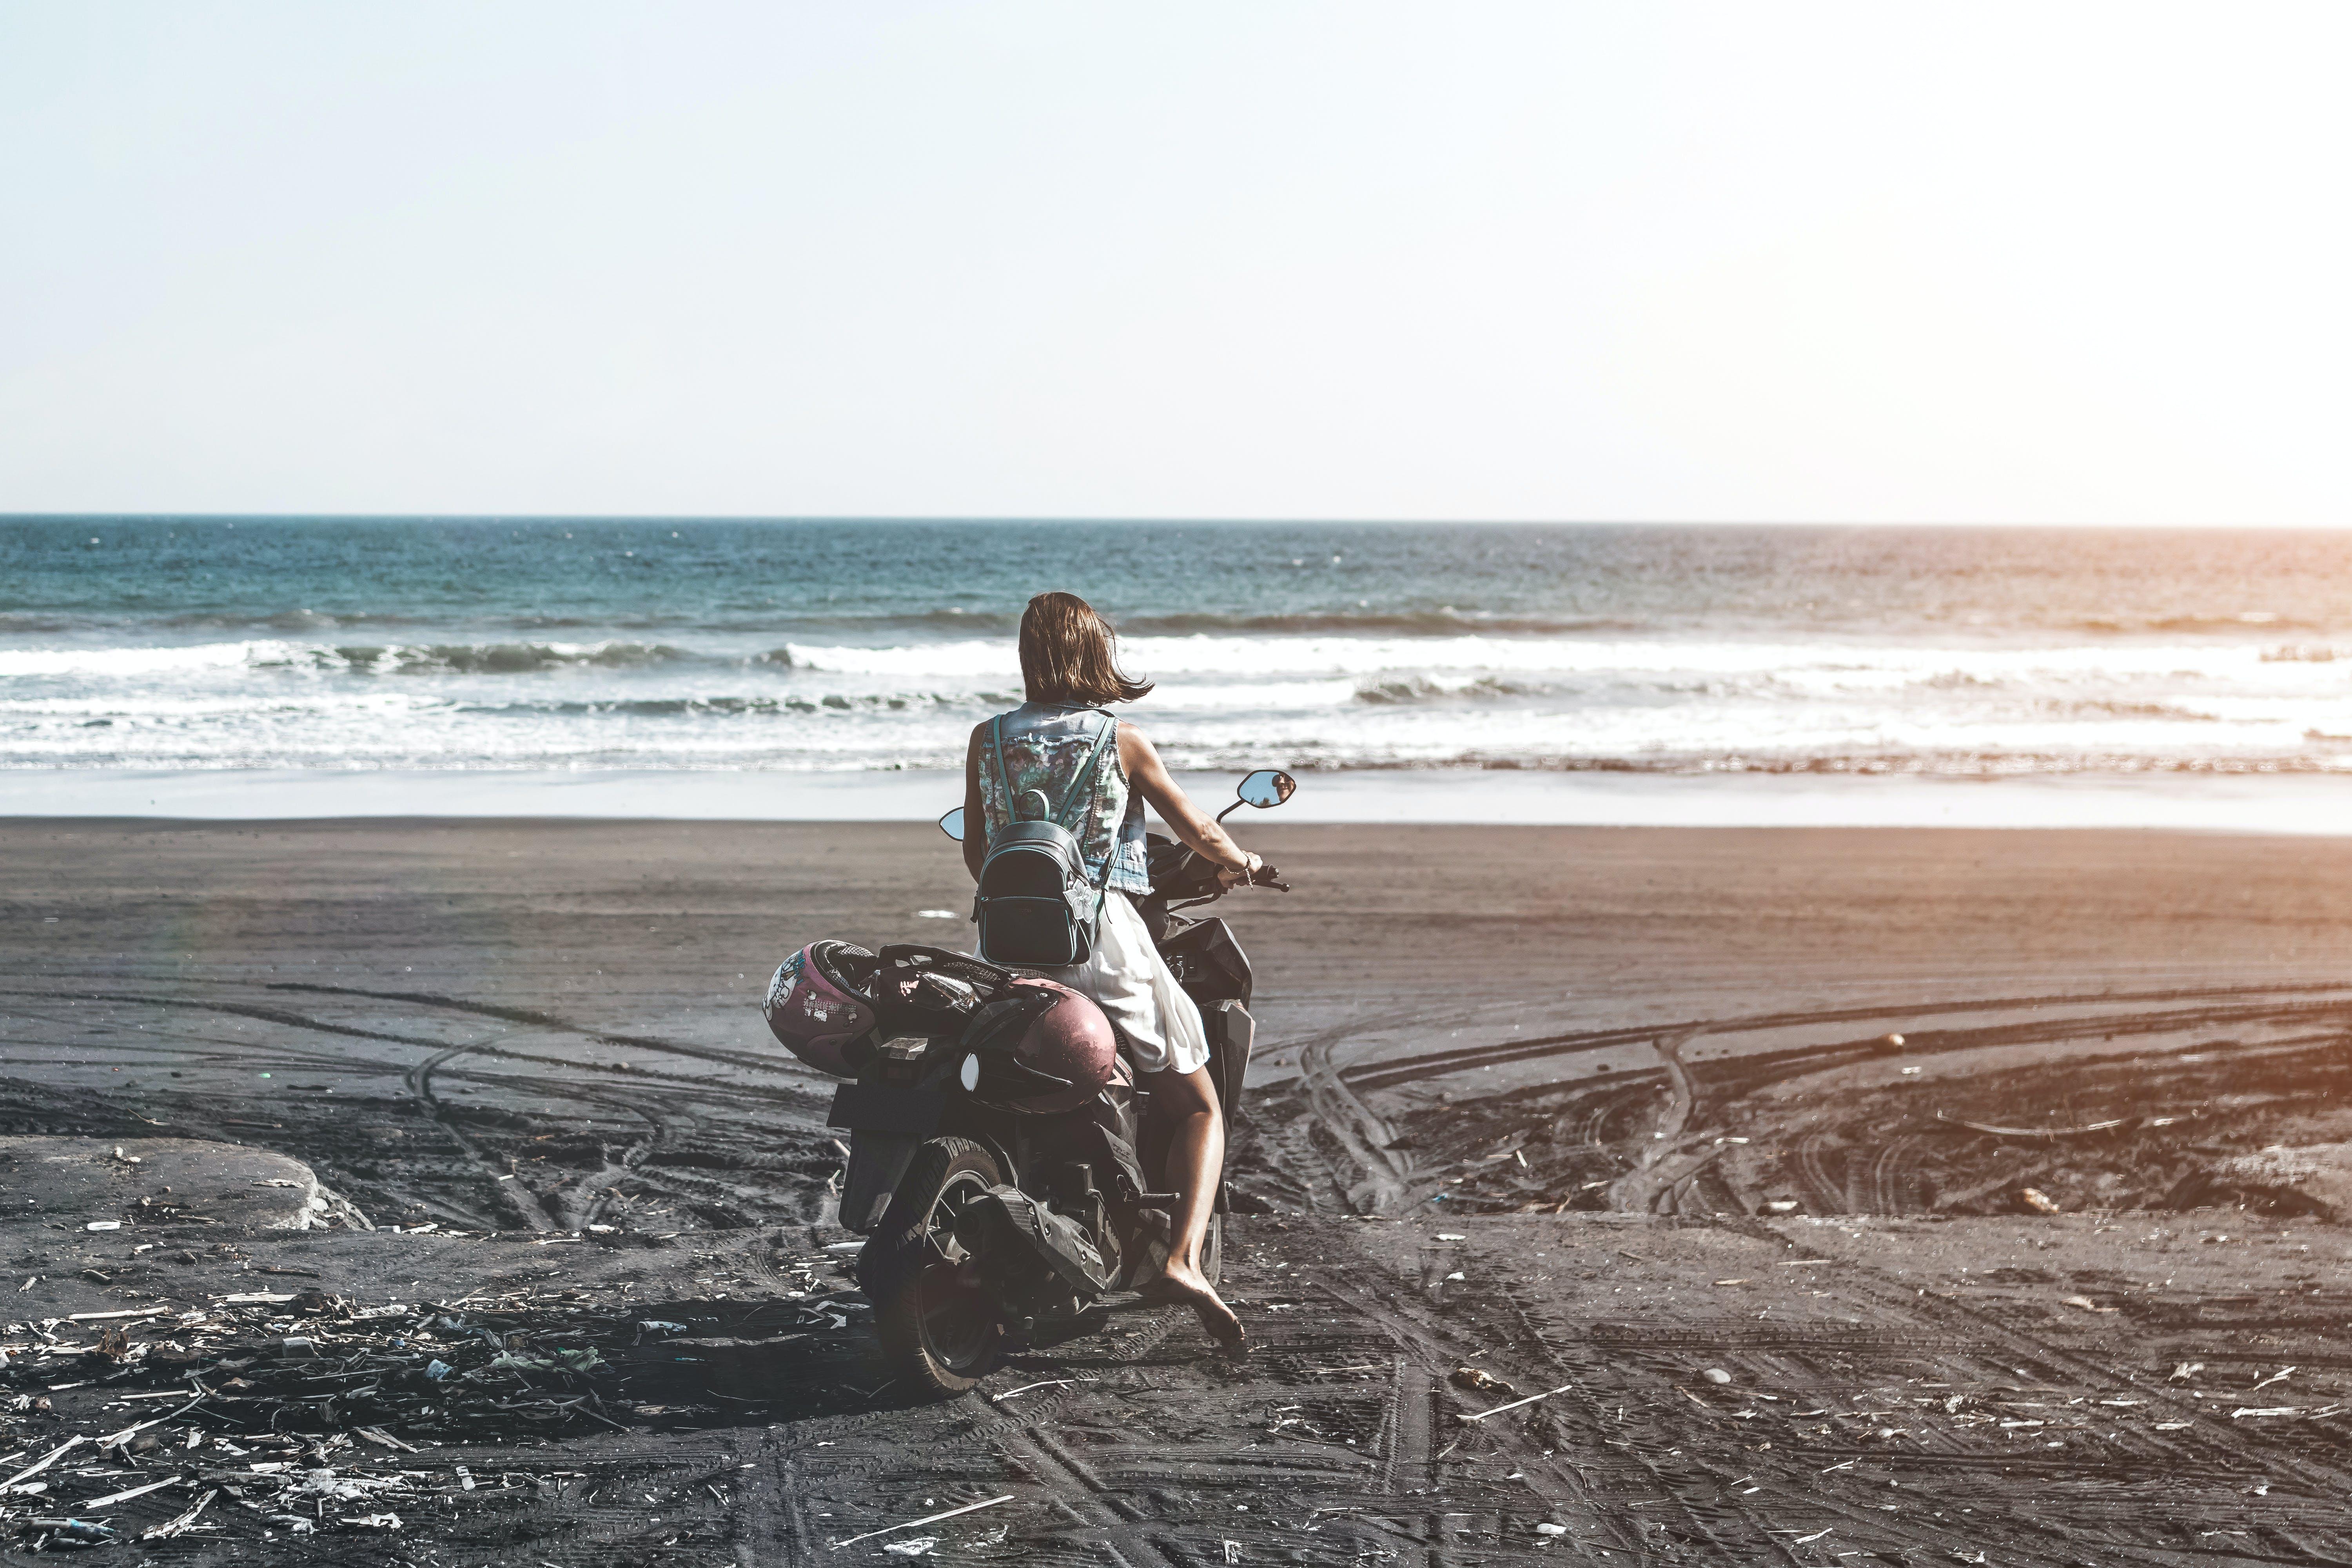 Woman Riding Motor Scooter on Seashore